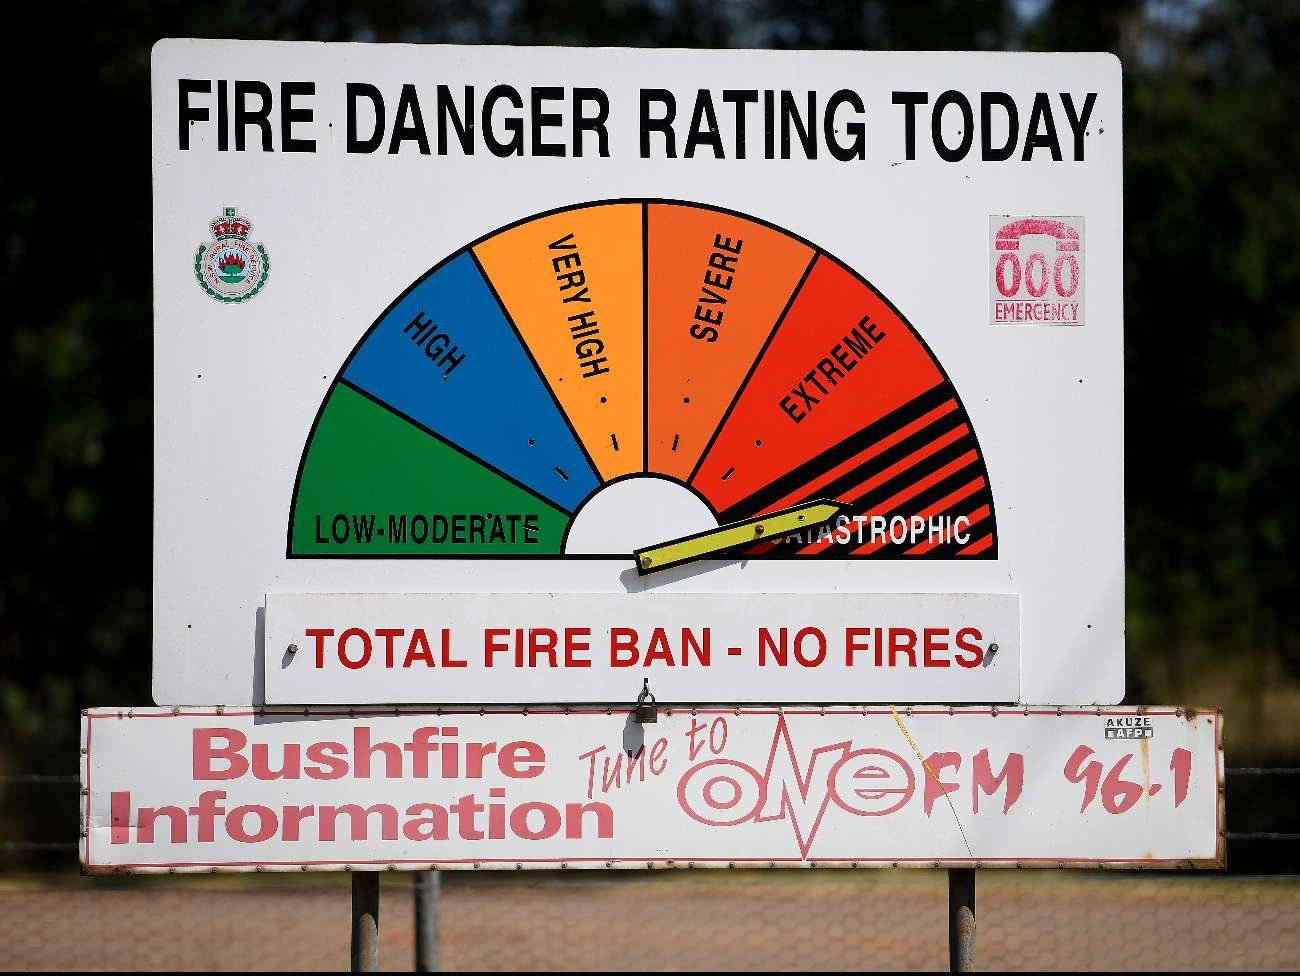 While there is currently no immediate fire threat locally, a catastrophic fire danger rating has been issued for tomorrow. My office has had a number of